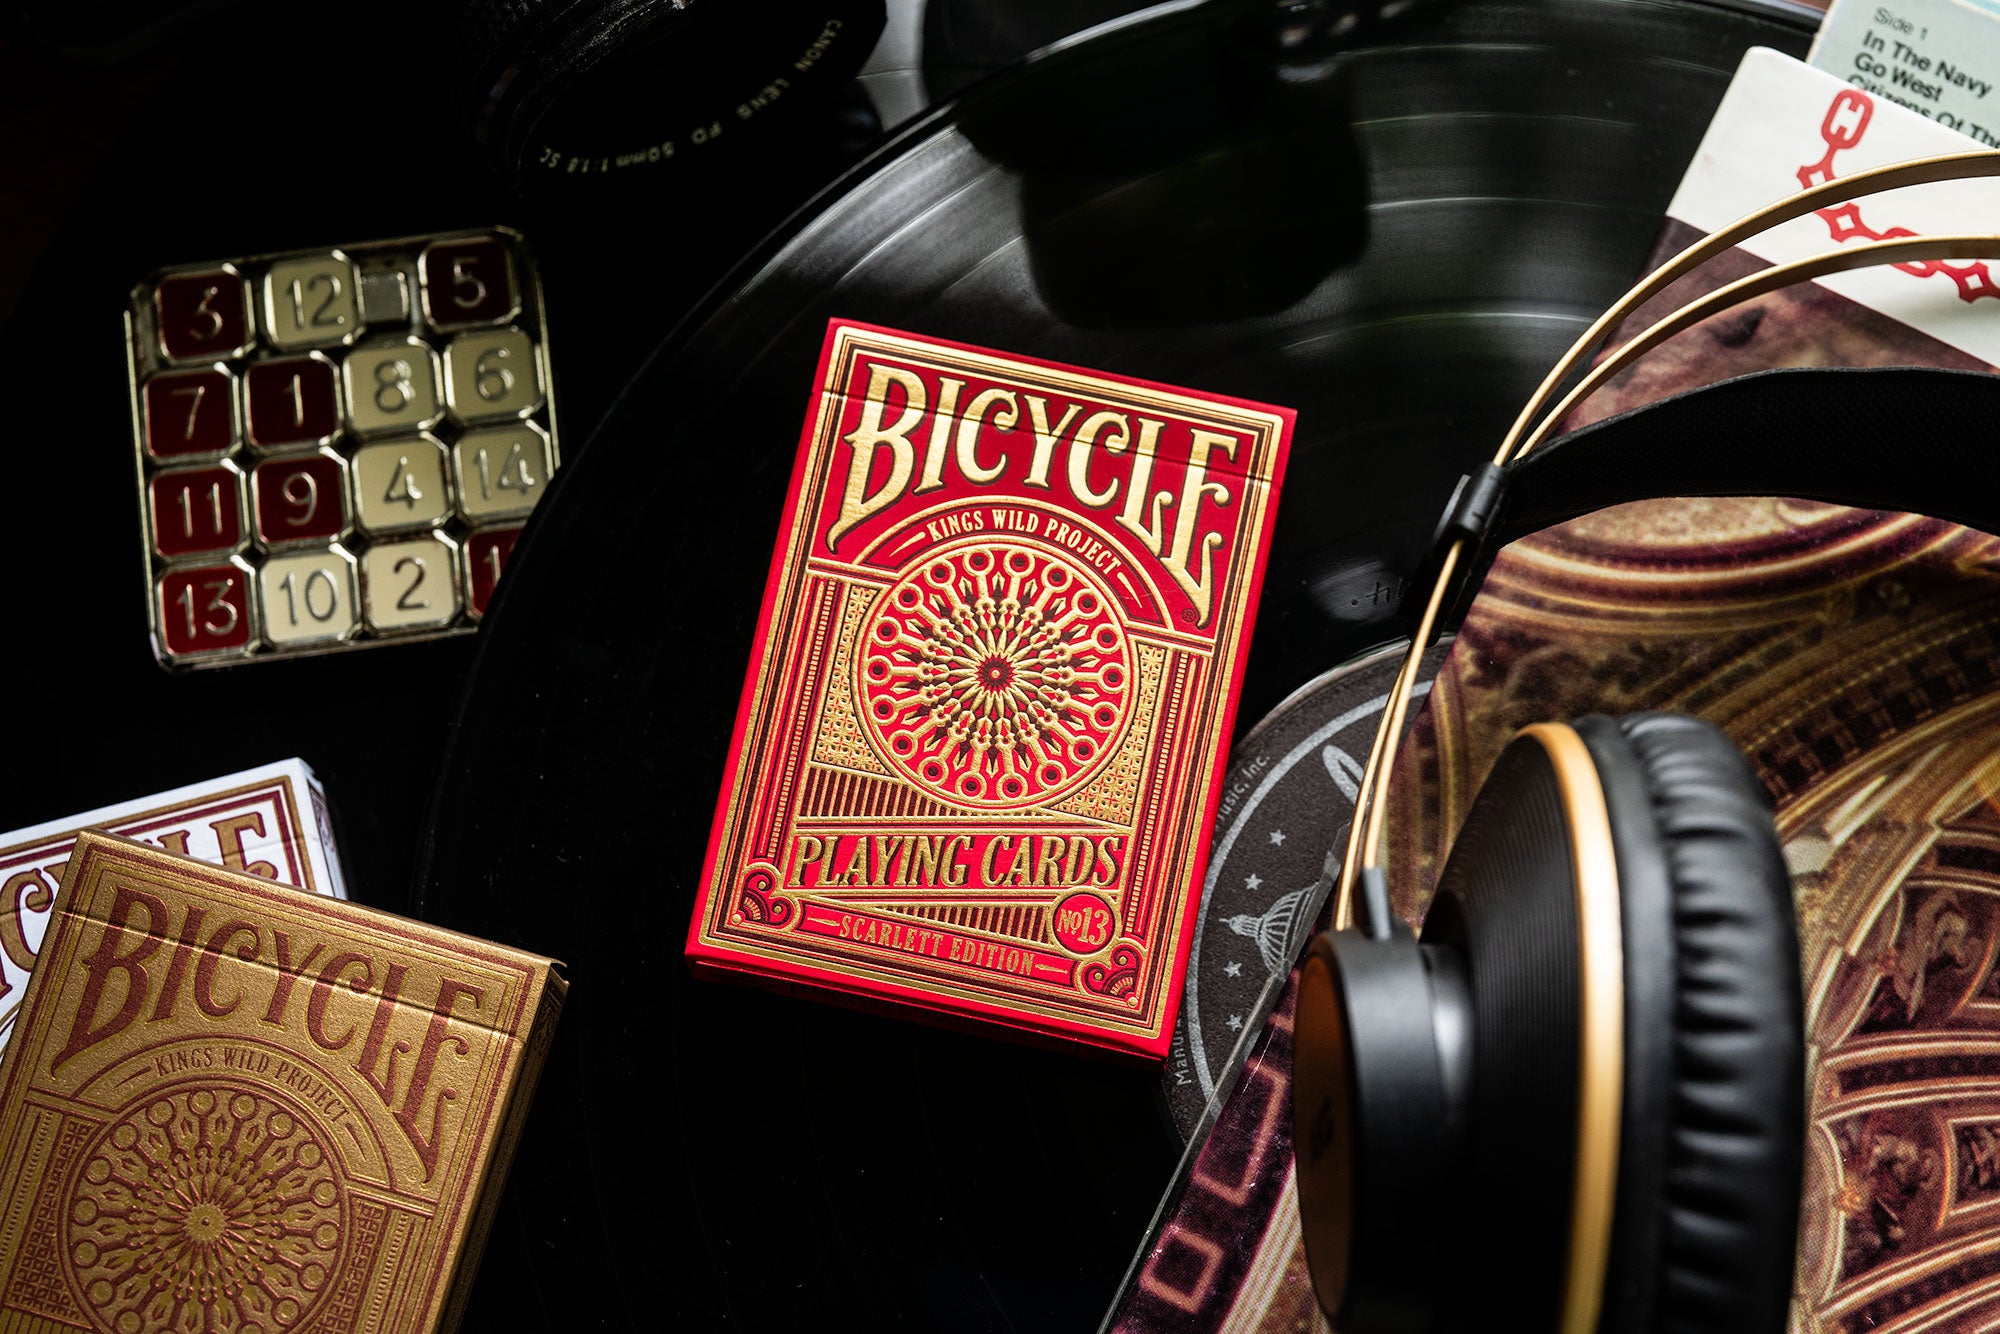 Scarlett Bicycle - Limited Edition